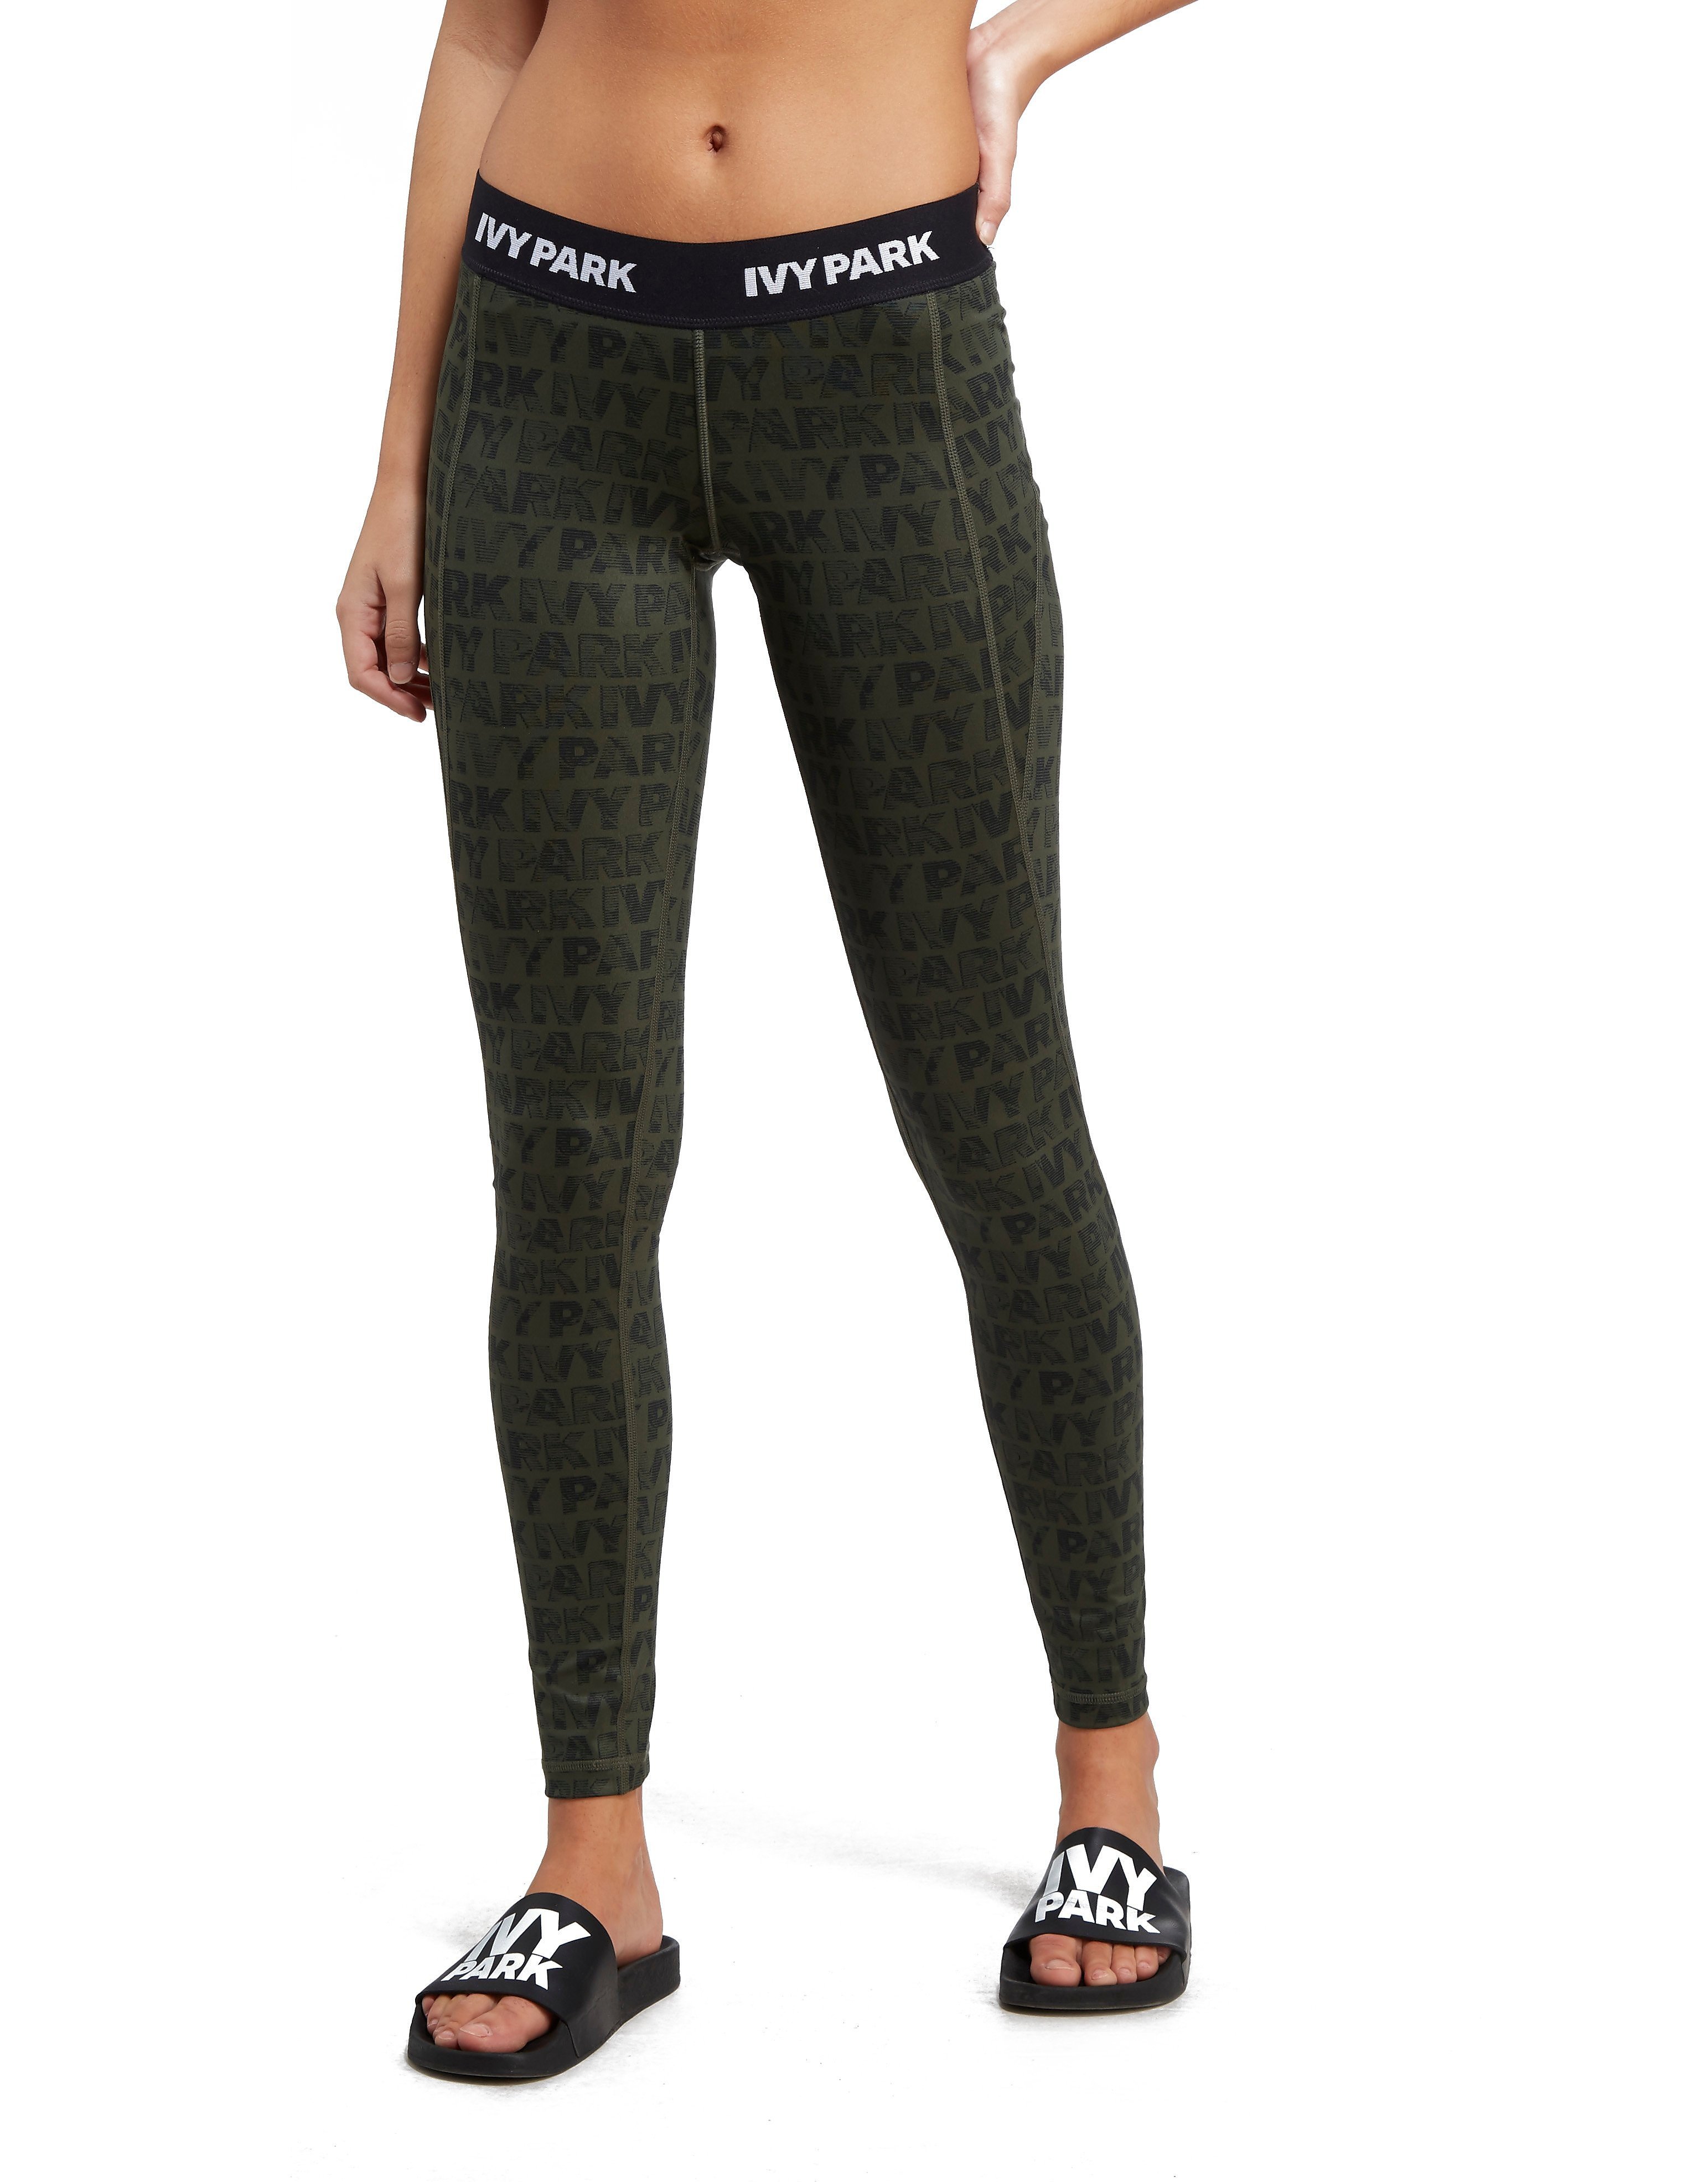 IVY PARK Low Rise Ankle Leggings